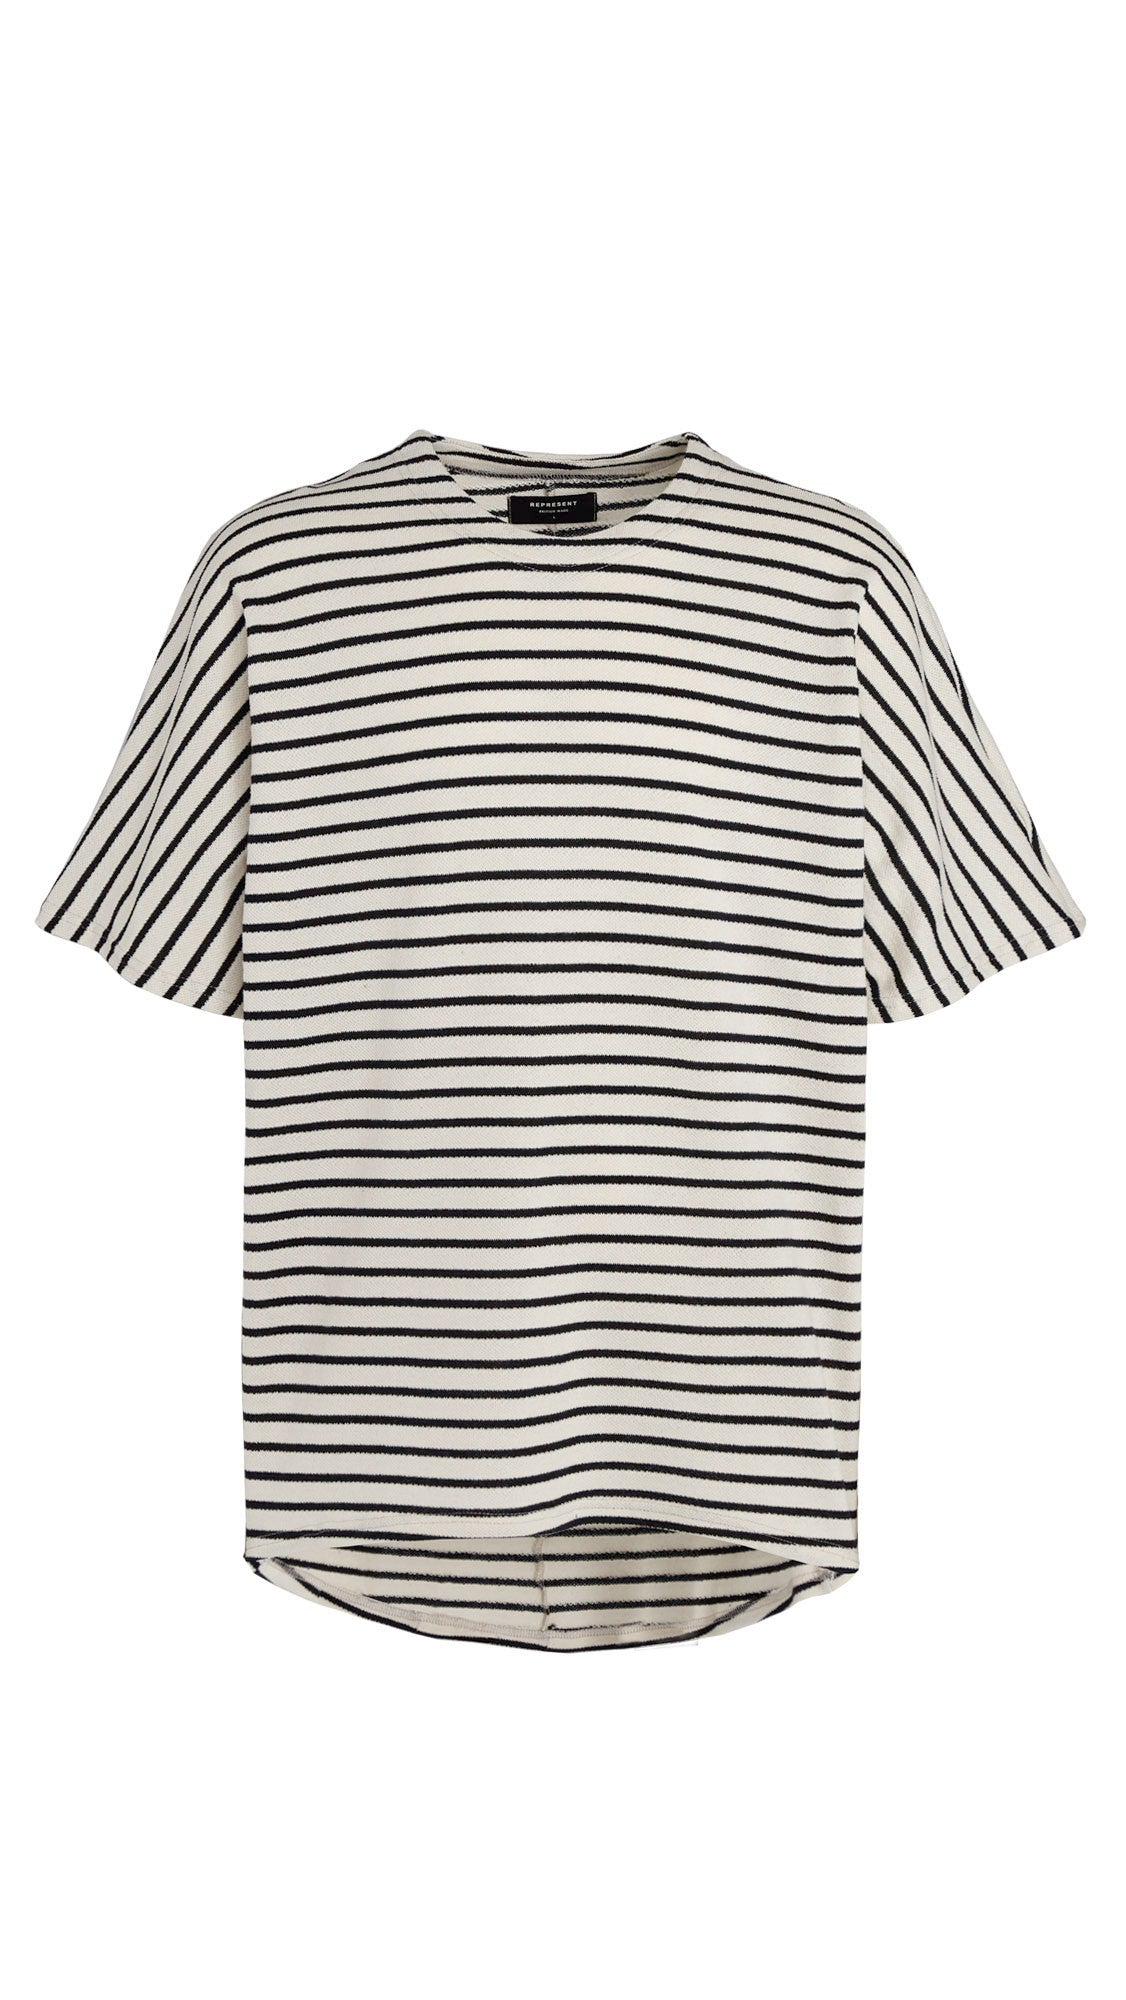 Scallop T-shirt - Striped